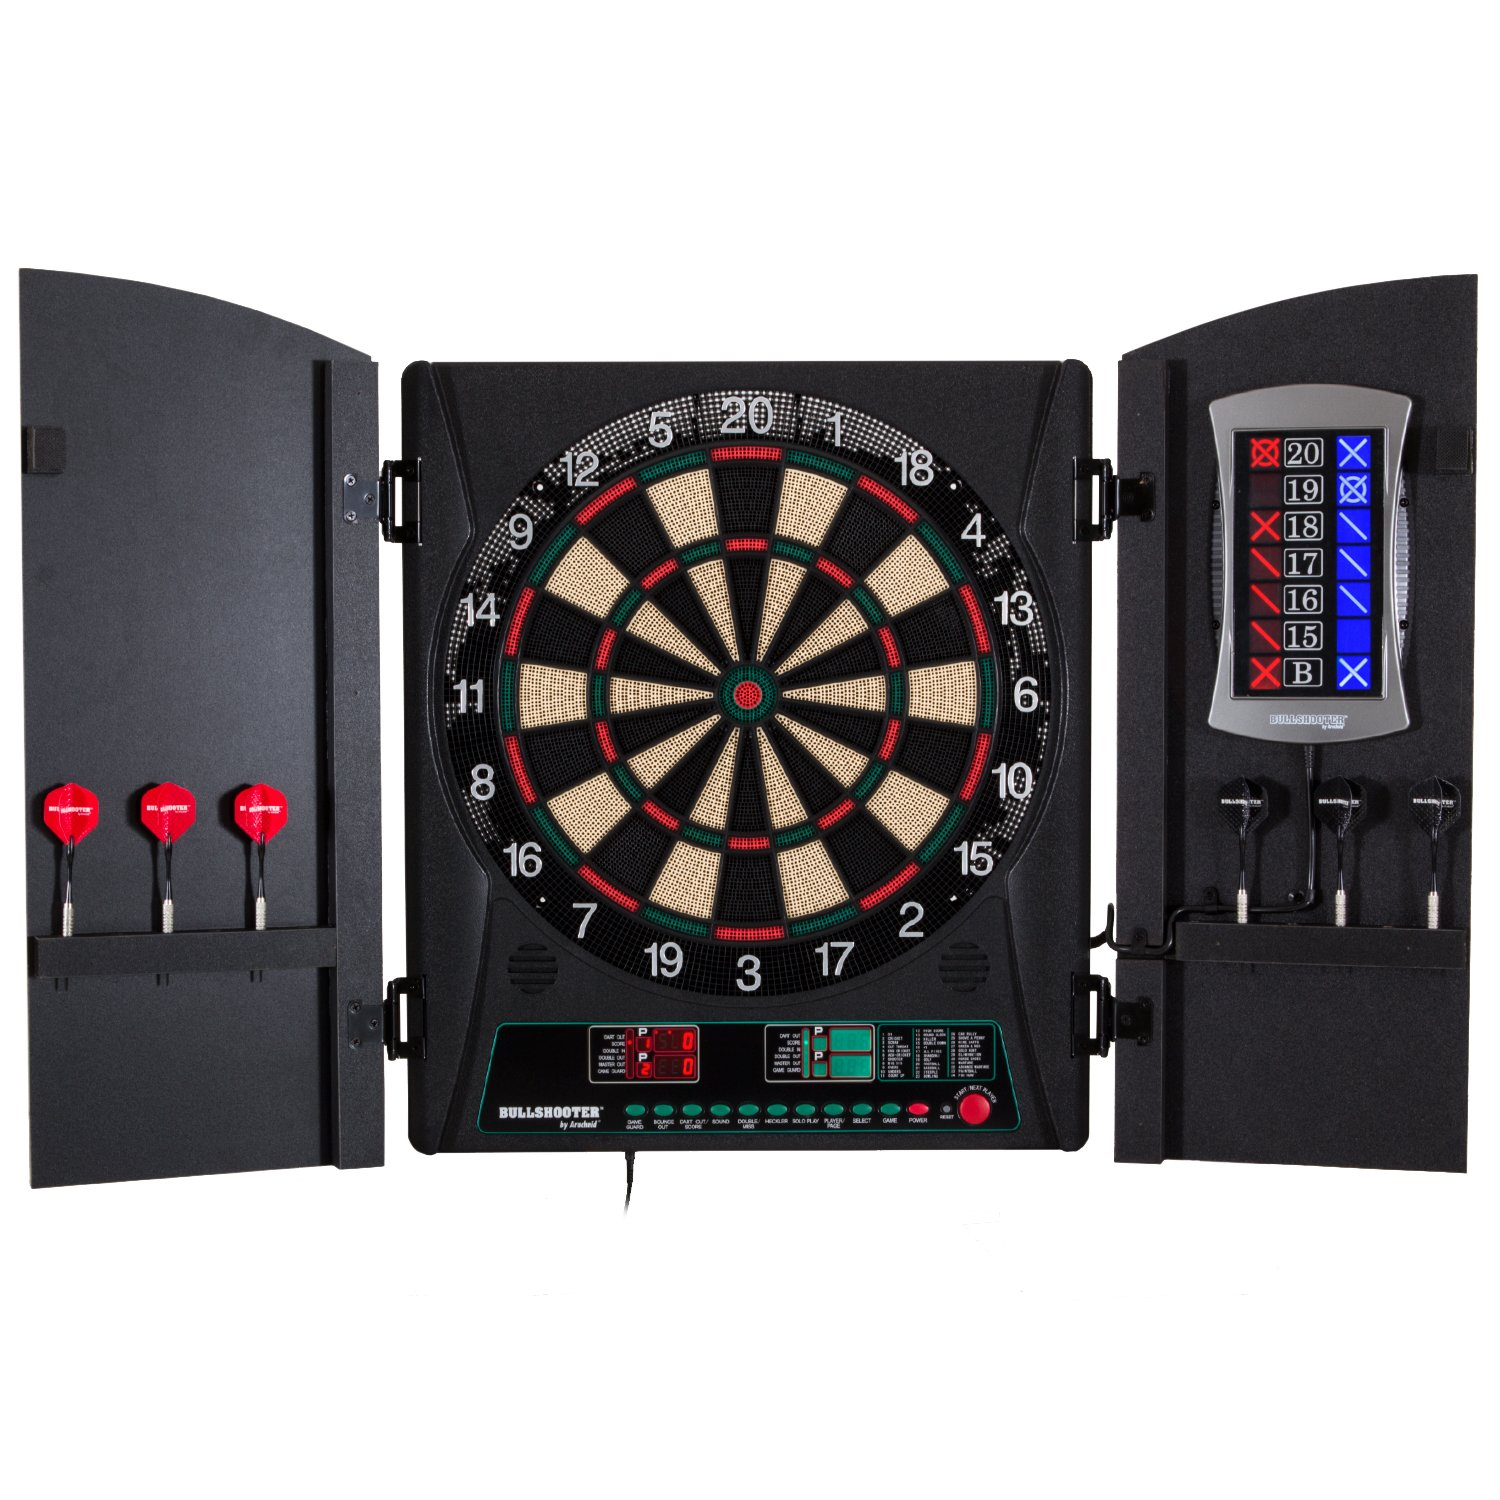 "Bullshooter Cricket Maxx 1.0 Electronic Dartboard Cabinet Set with 13.5"" Target Area"